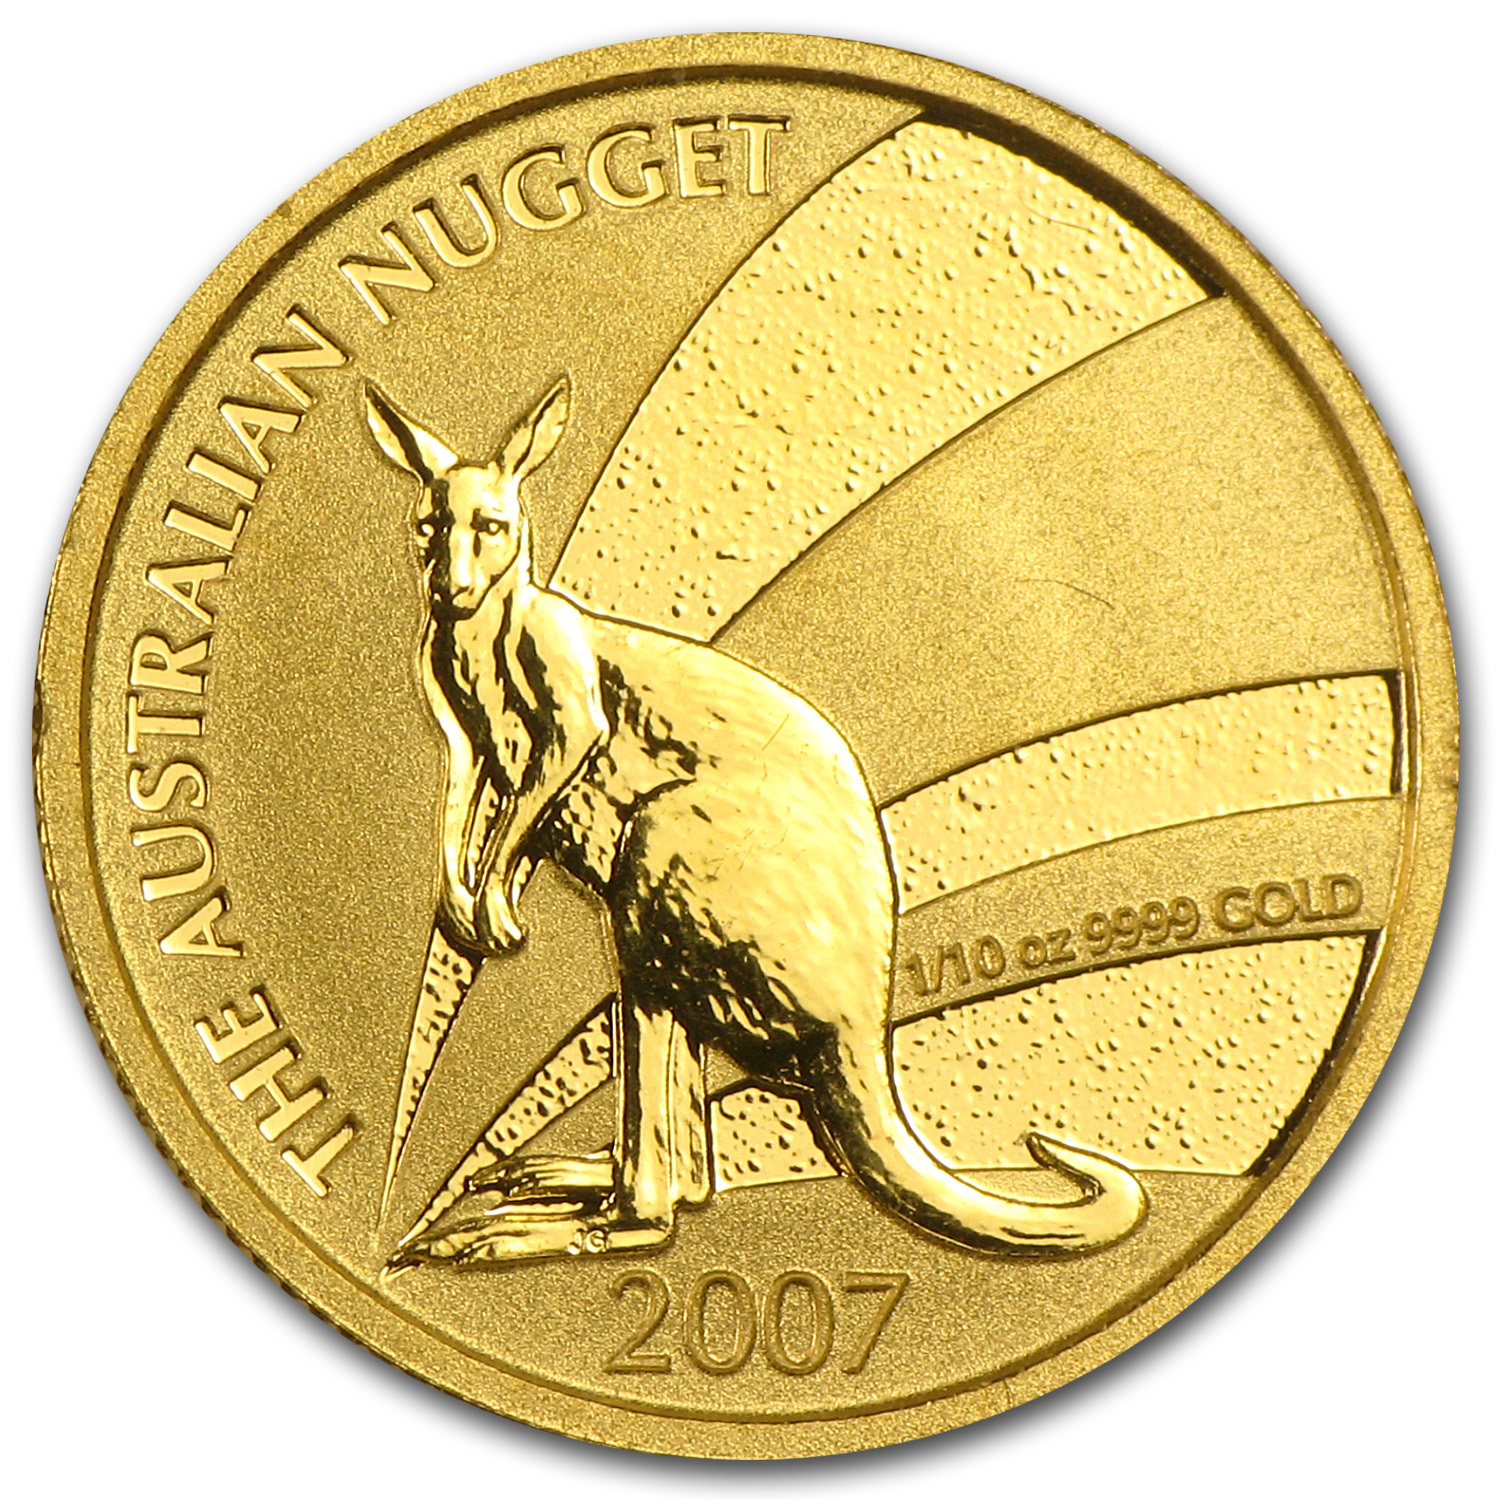 2007 1/10 oz Australian Gold Nugget